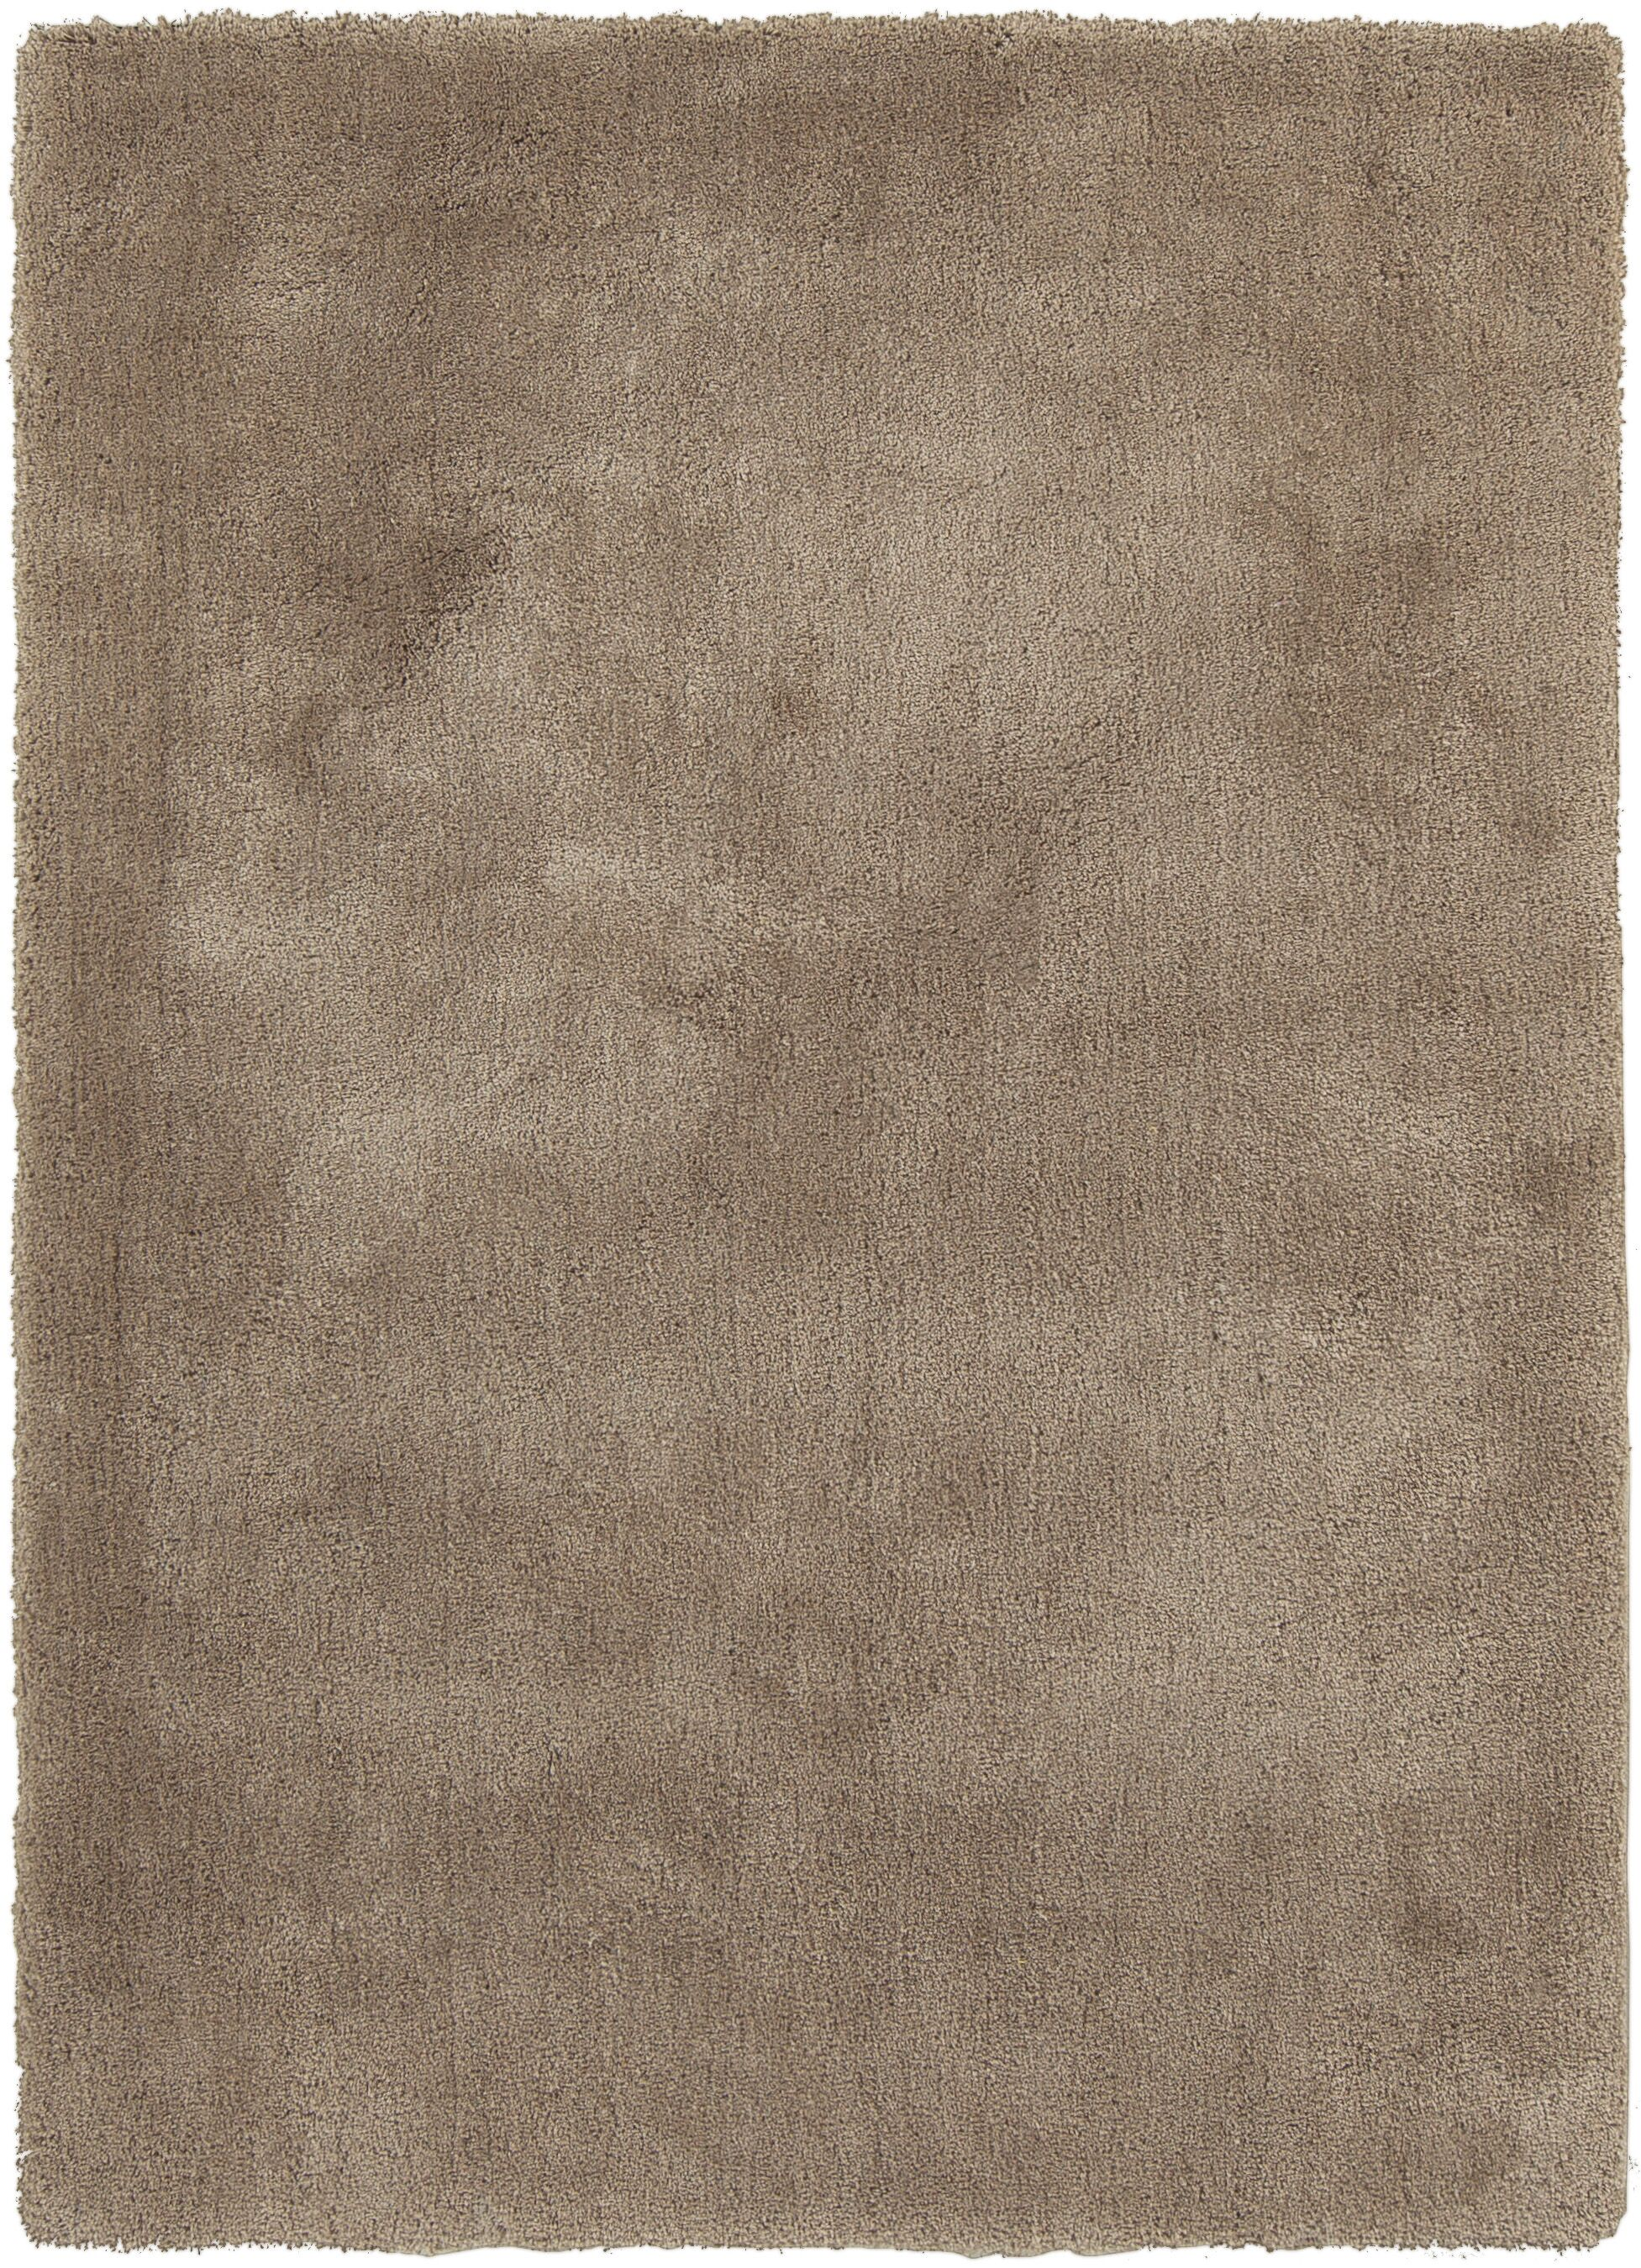 Braun Hand Woven Desert Sand Area Rug Rug Size: Rectangle 5' x 7'